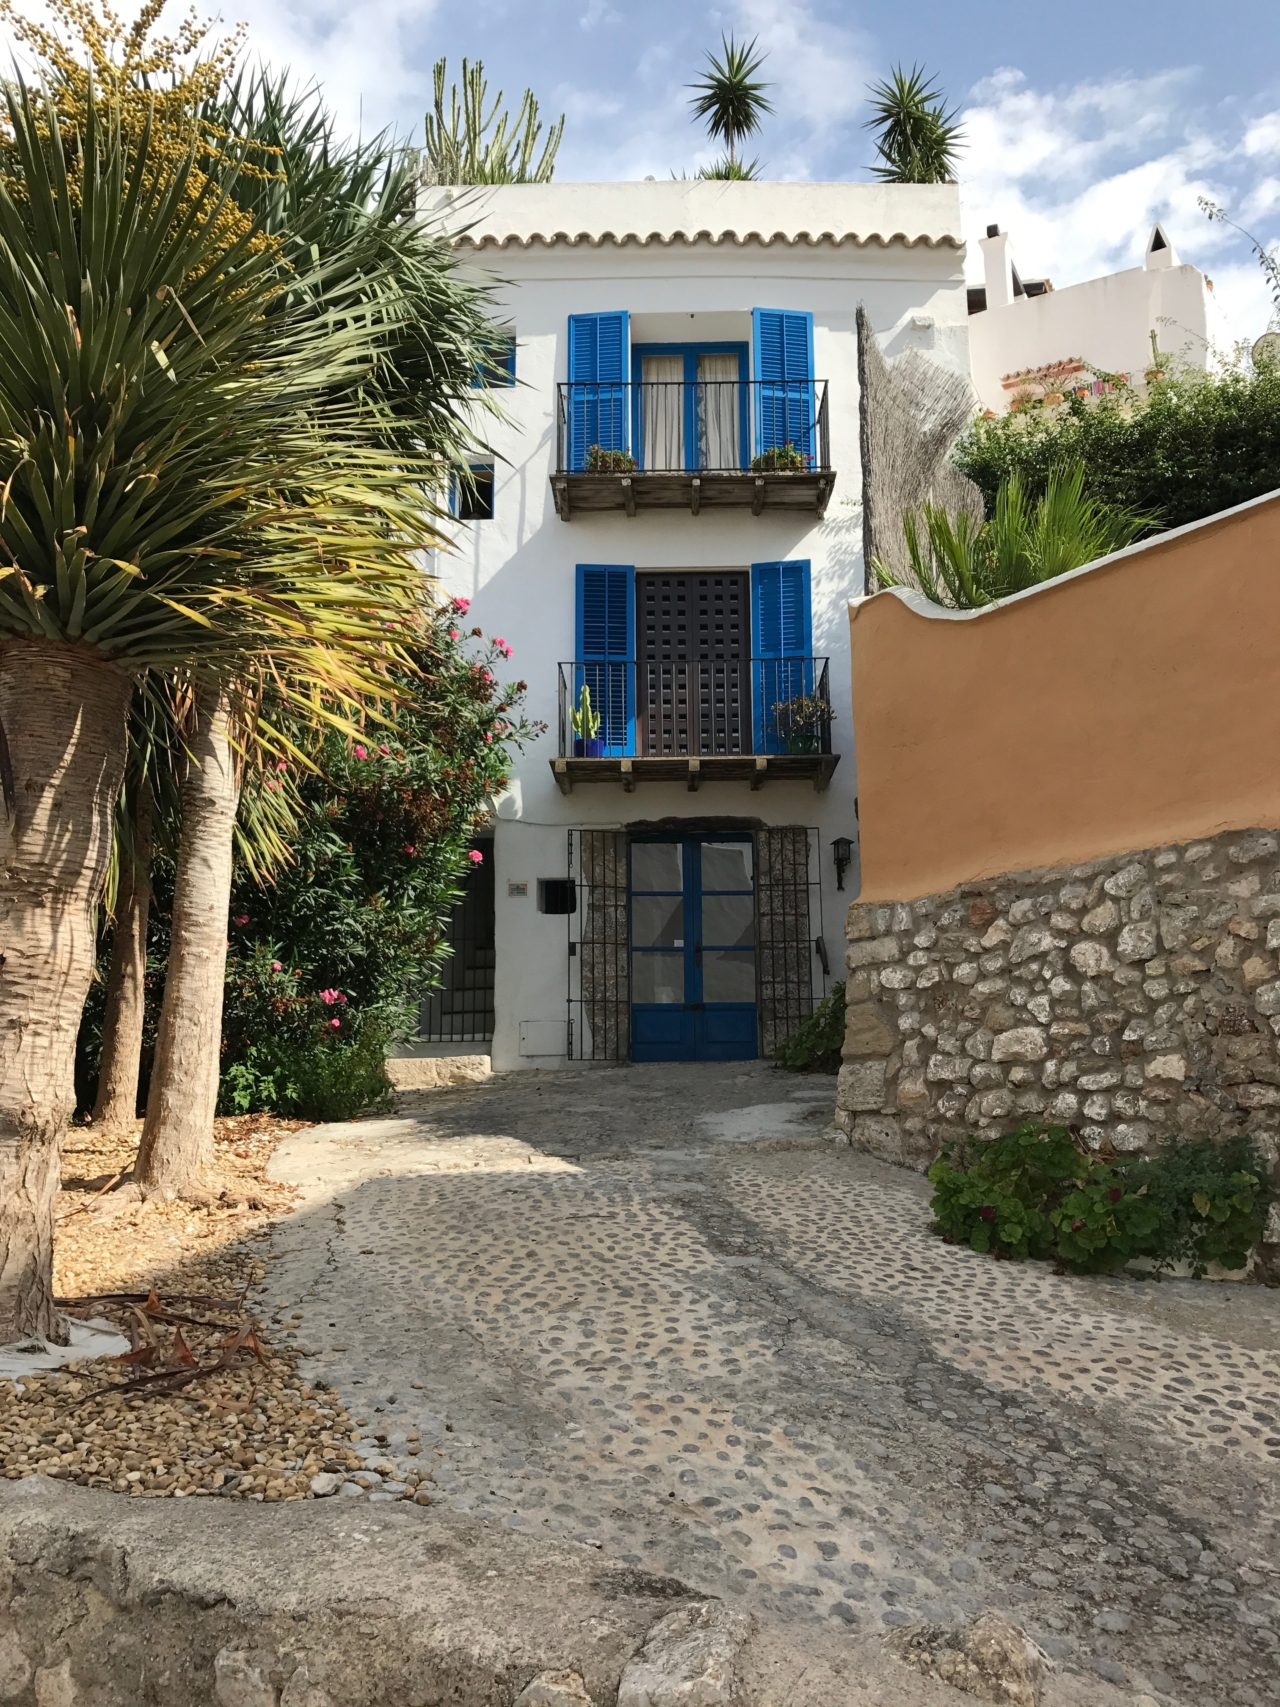 Apartment Building In A Narrow Alley With Cobblestone